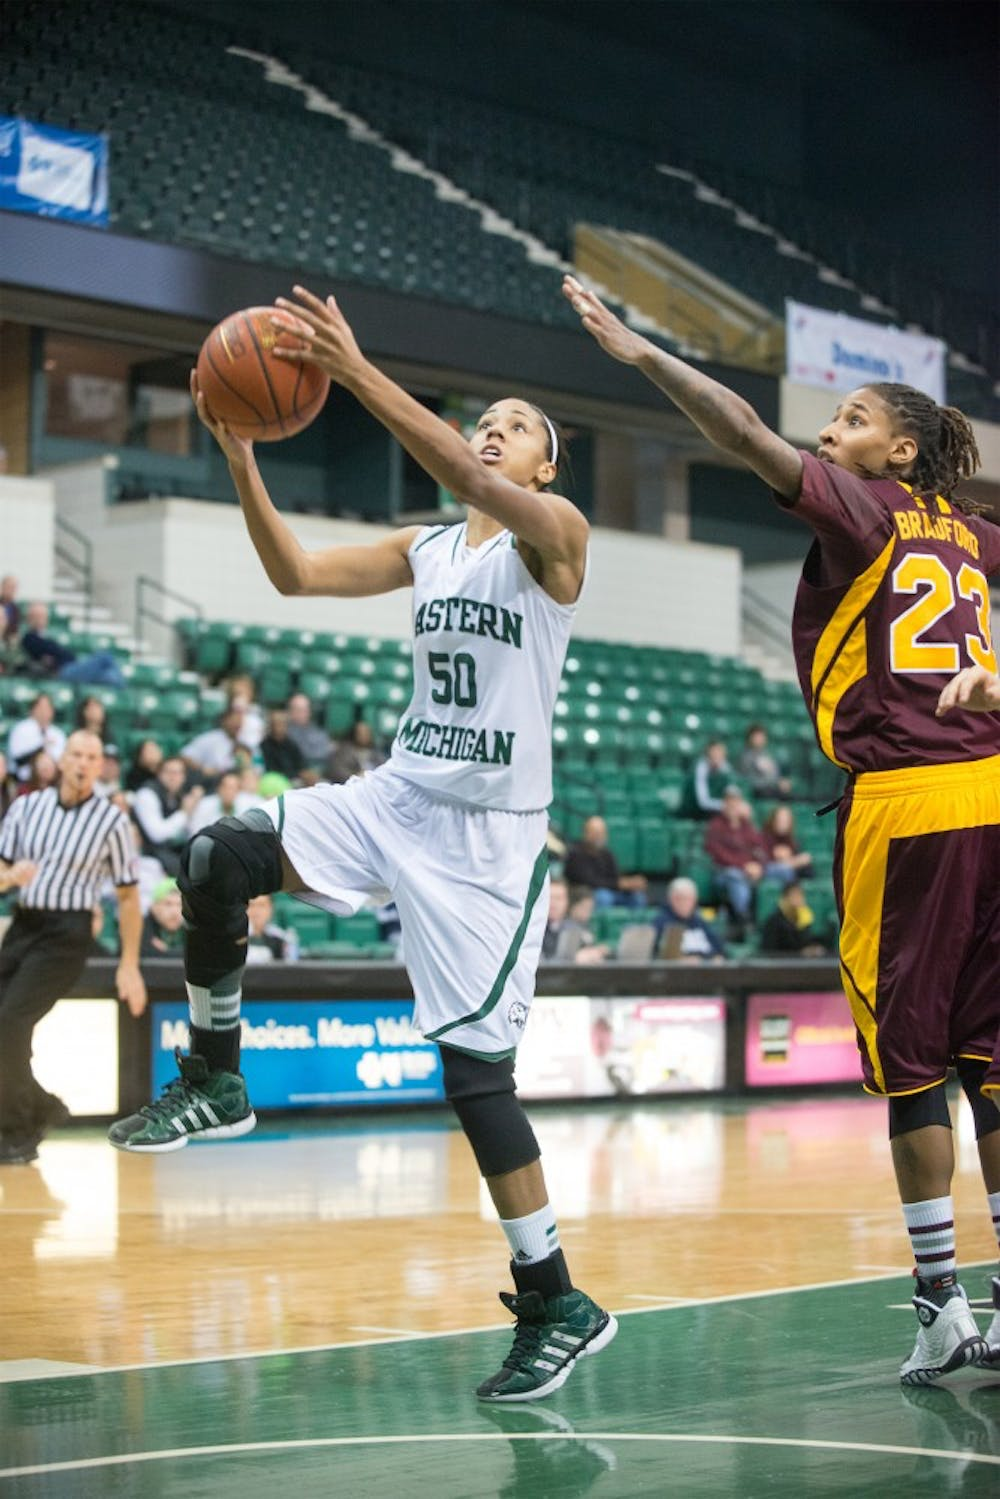 EMU women's basketball clinches no. 8 seed in MAC Tournament